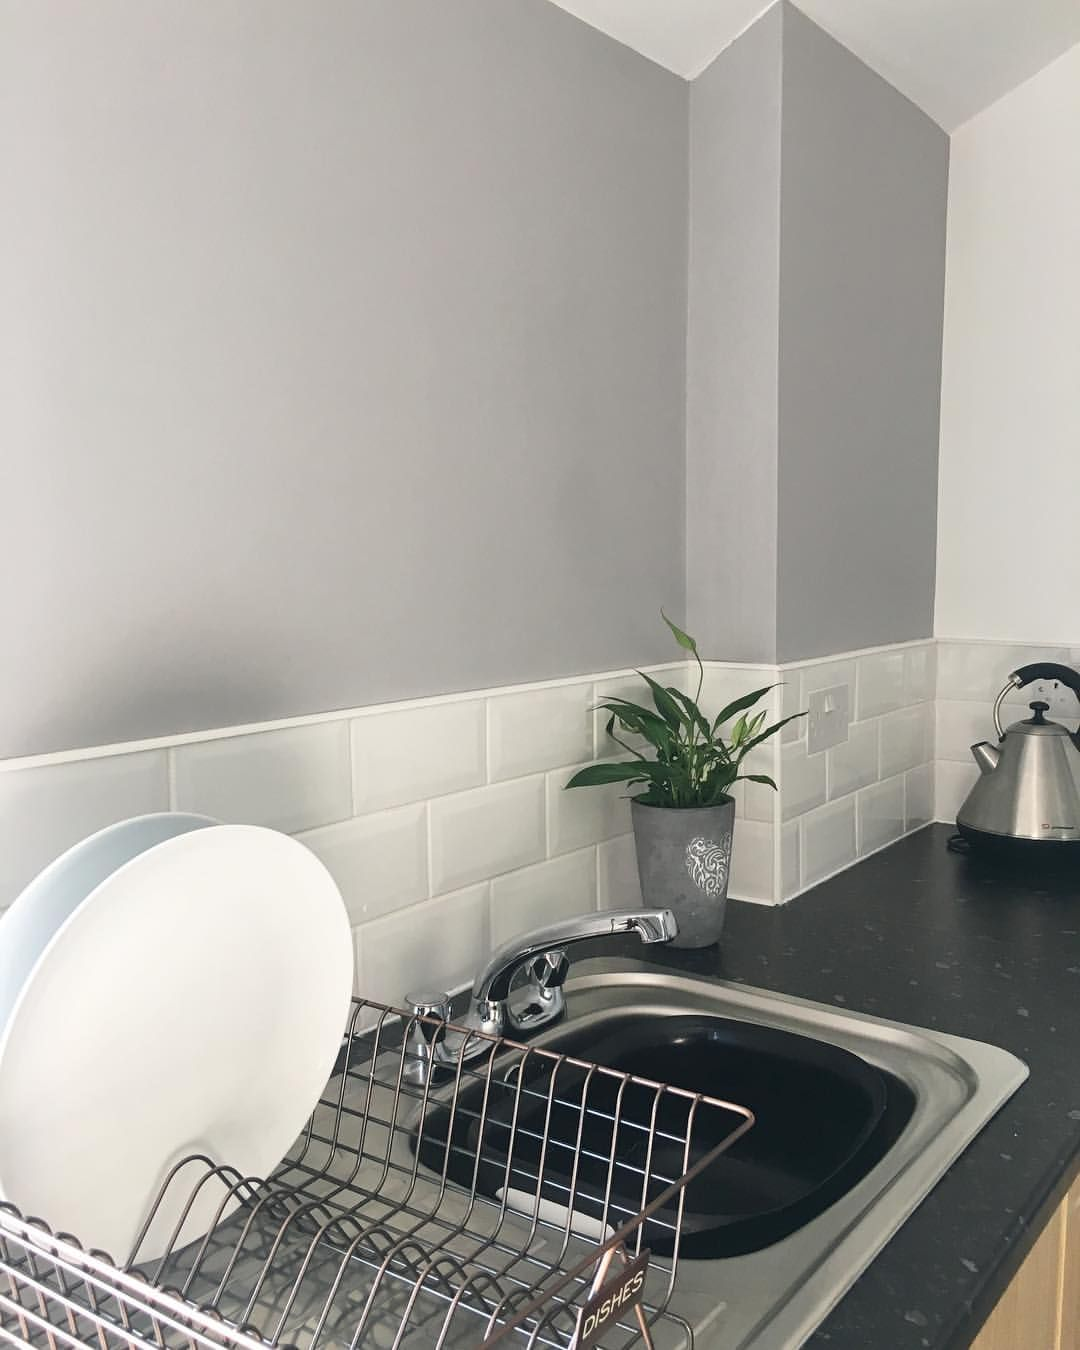 Dulux Chic Shadow Grey Painted Kitchen Chic Shadow Dulux Living Room Dulux Chic Shadow